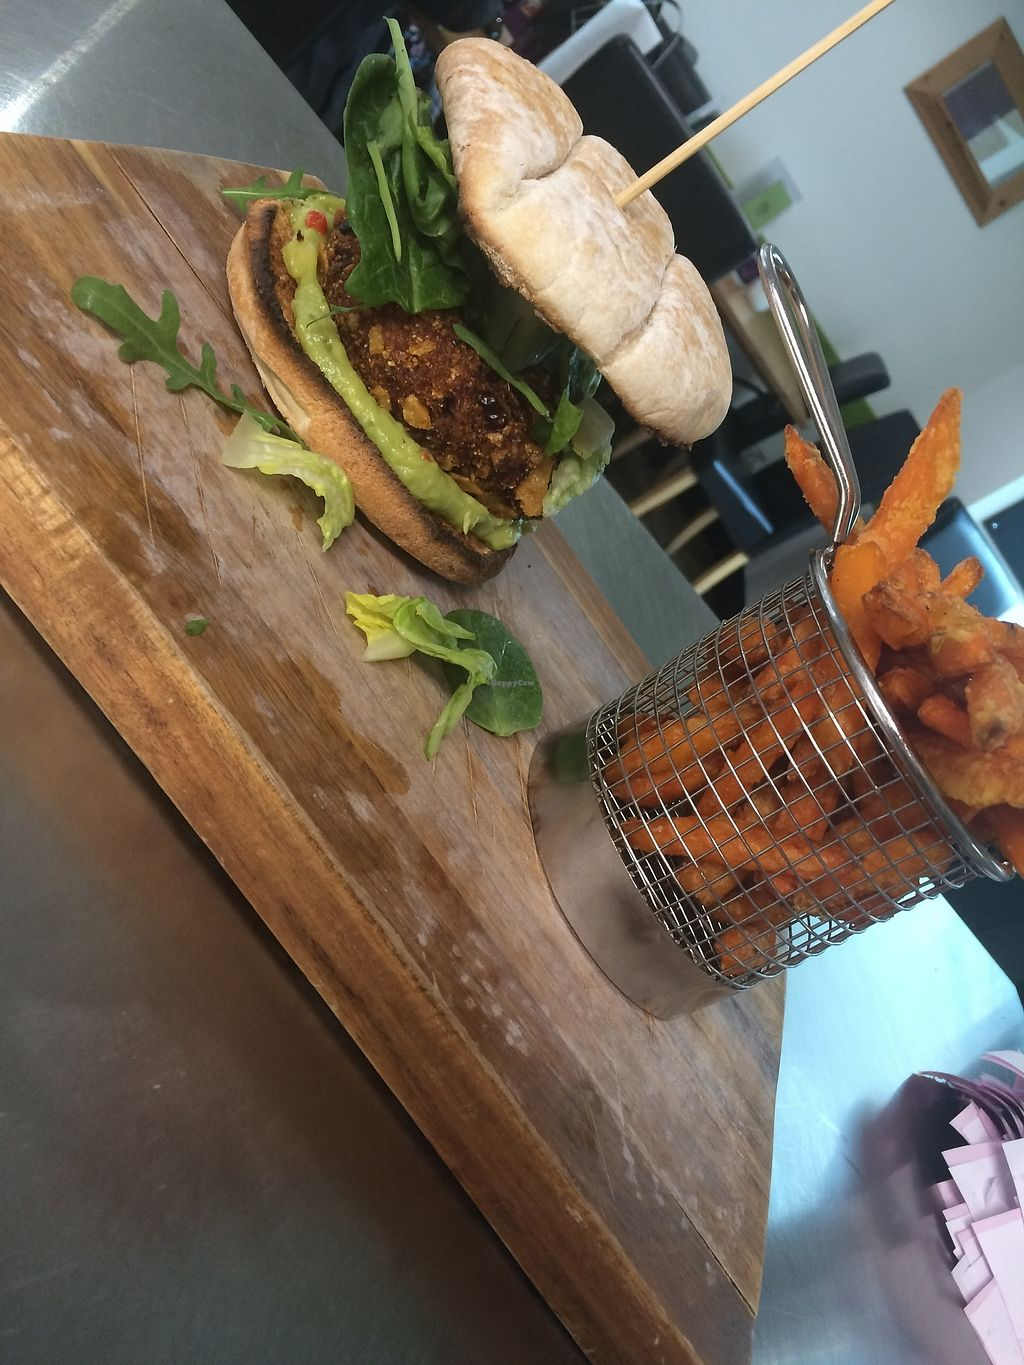 """Photo of The Green Rooms  by <a href=""""/members/profile/Aimeebrooks9"""">Aimeebrooks9</a> <br/>Sweet potato and red bean burger <br/> April 13, 2018  - <a href='/contact/abuse/image/117658/385351'>Report</a>"""